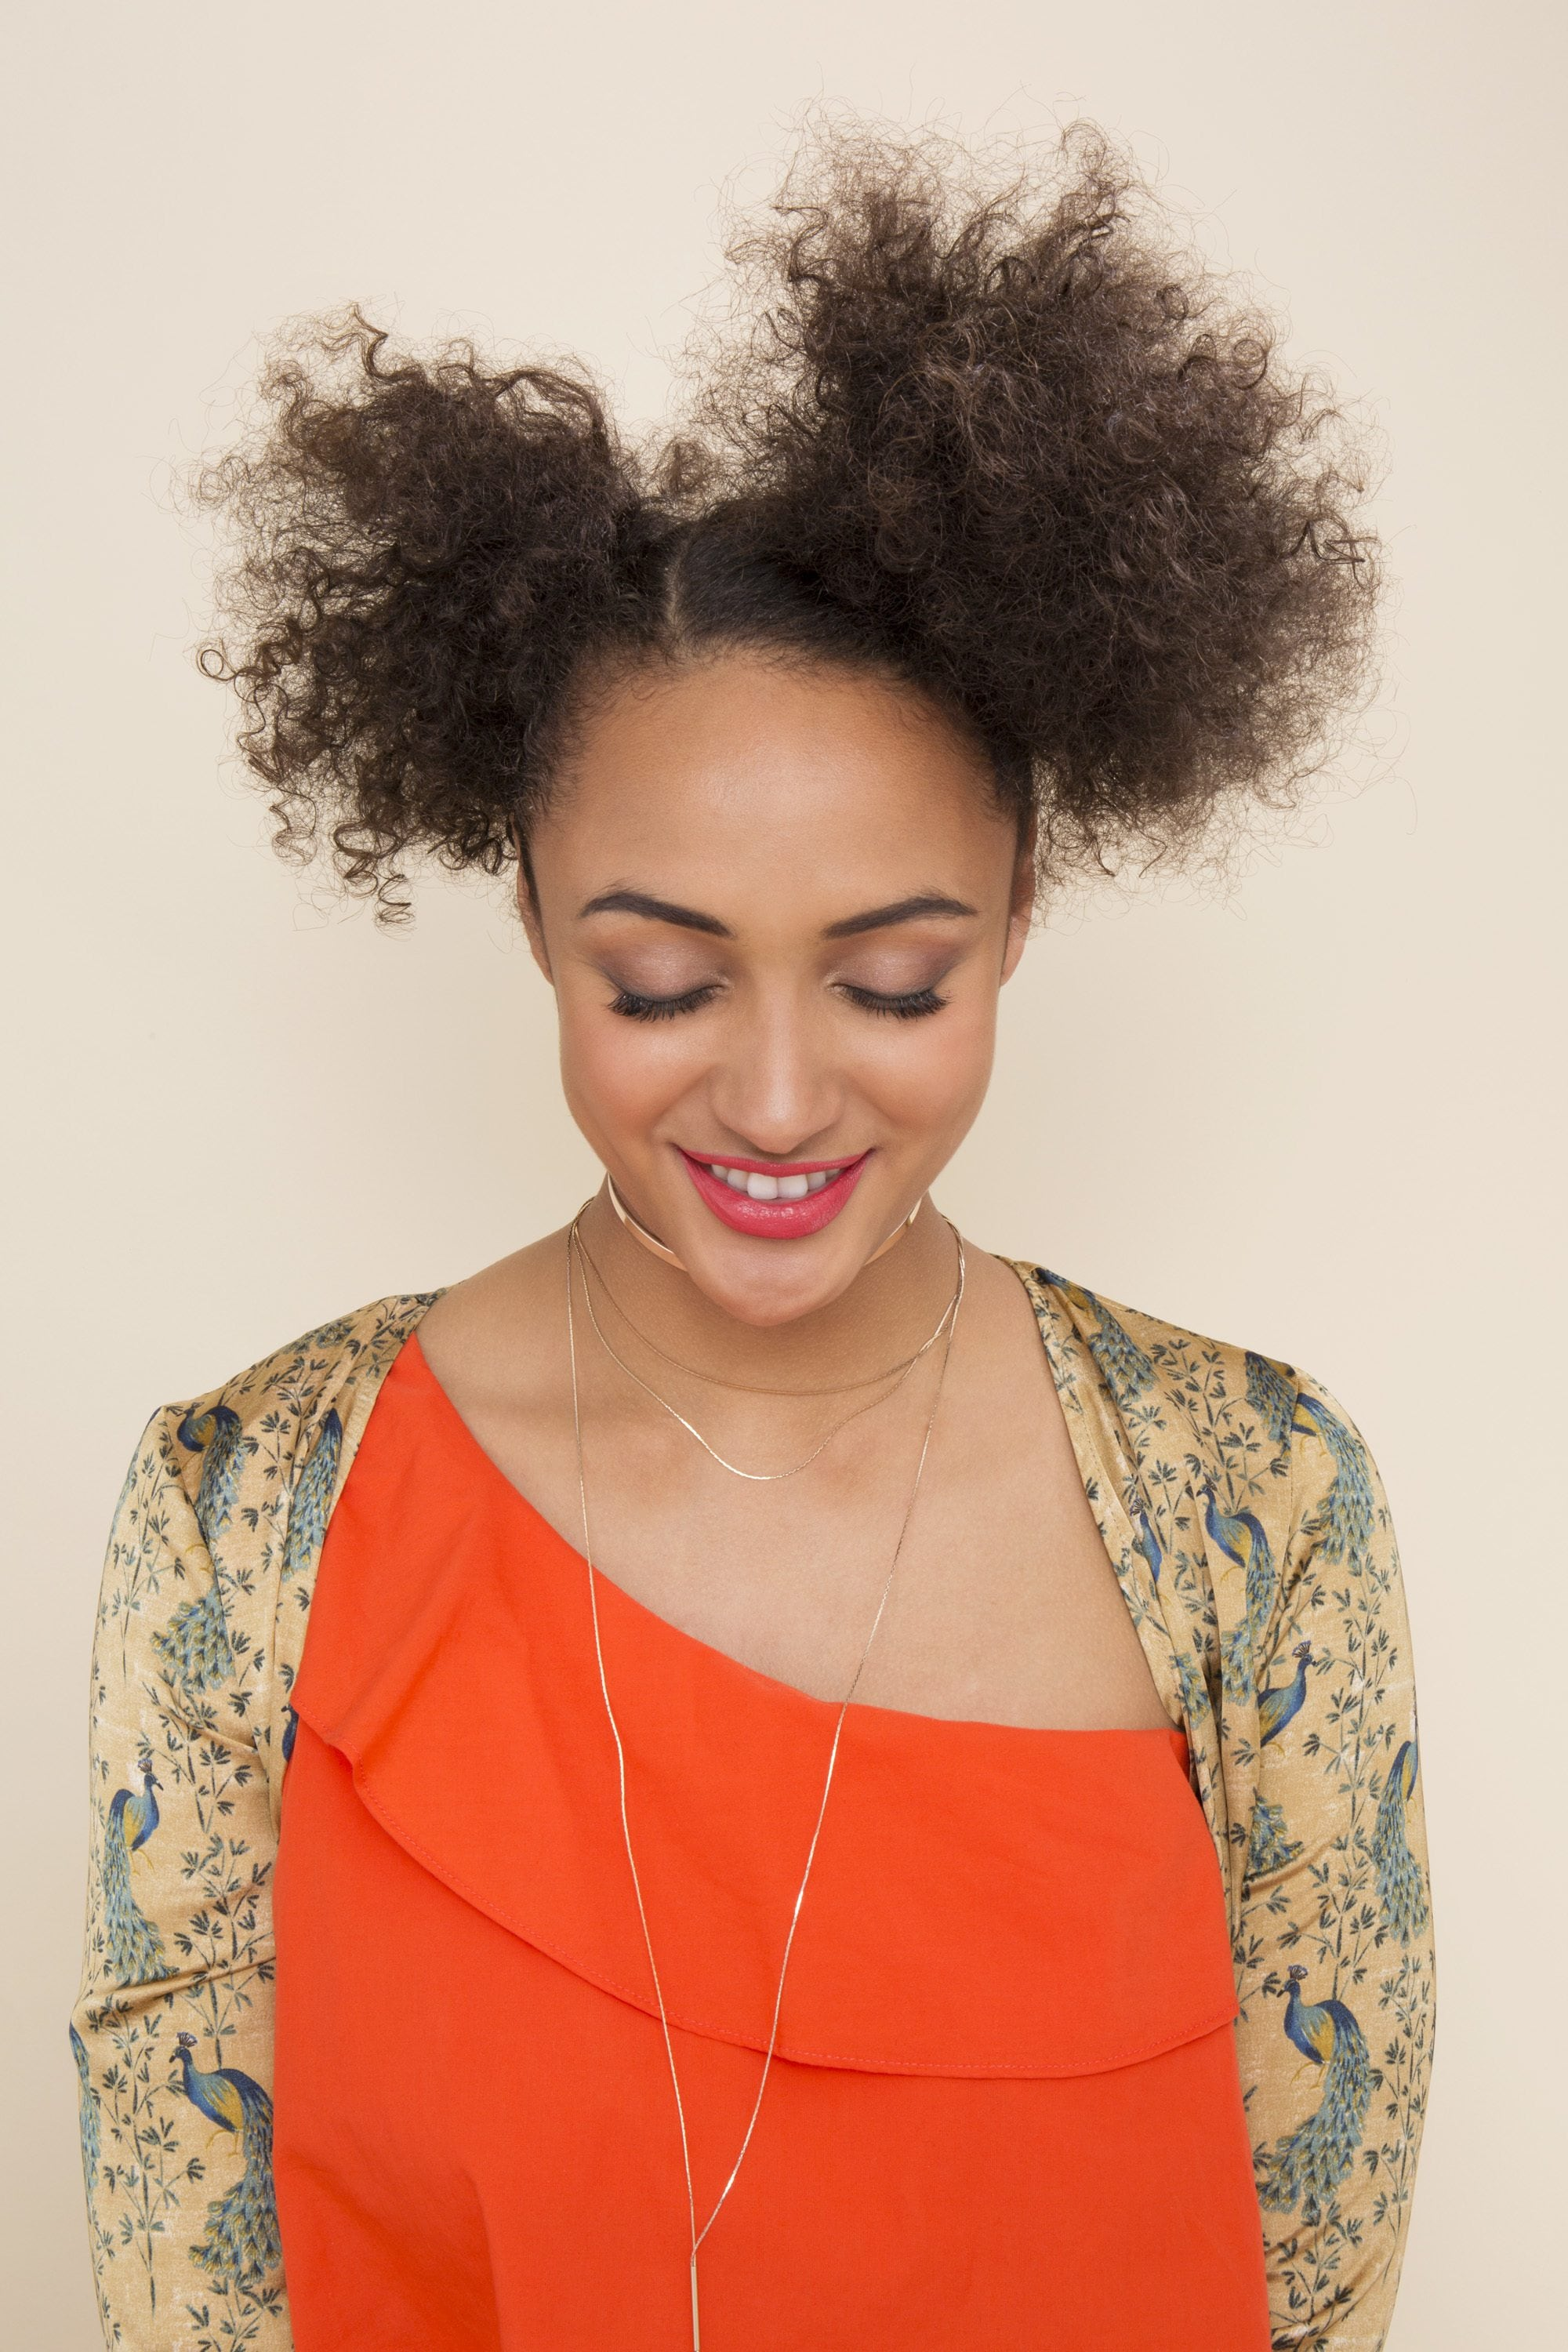 How To Create A Space Puff Hairstyle On Natural Hair